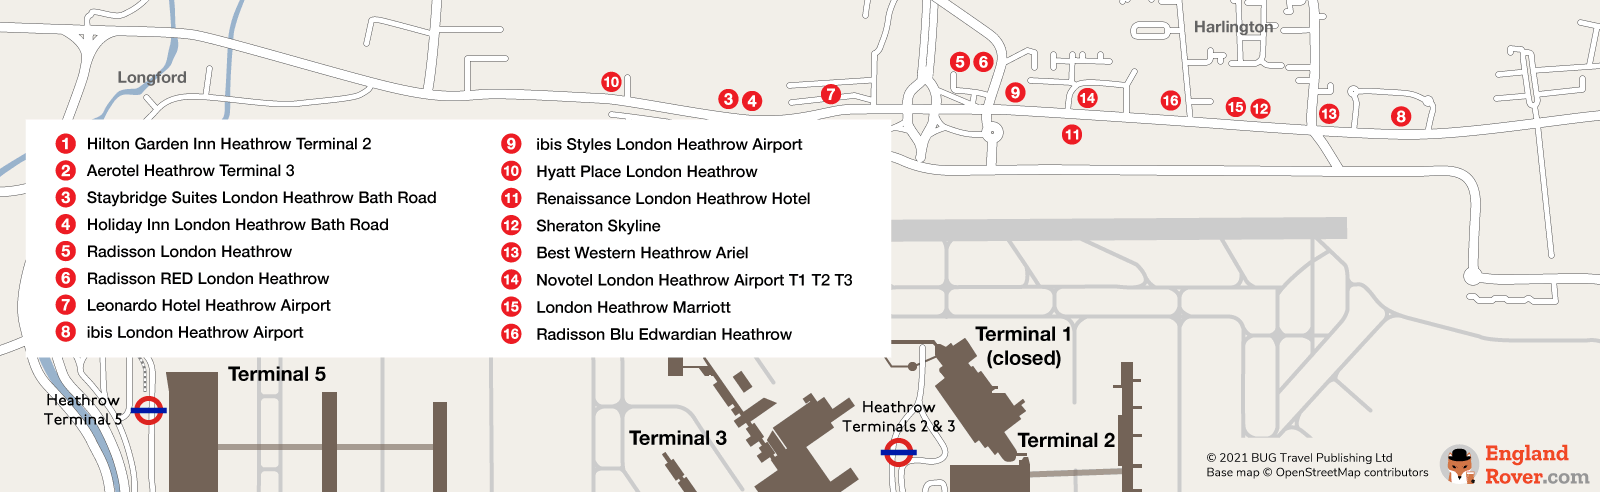 Hotels near London Heathrow Airport terminals 2 and 3